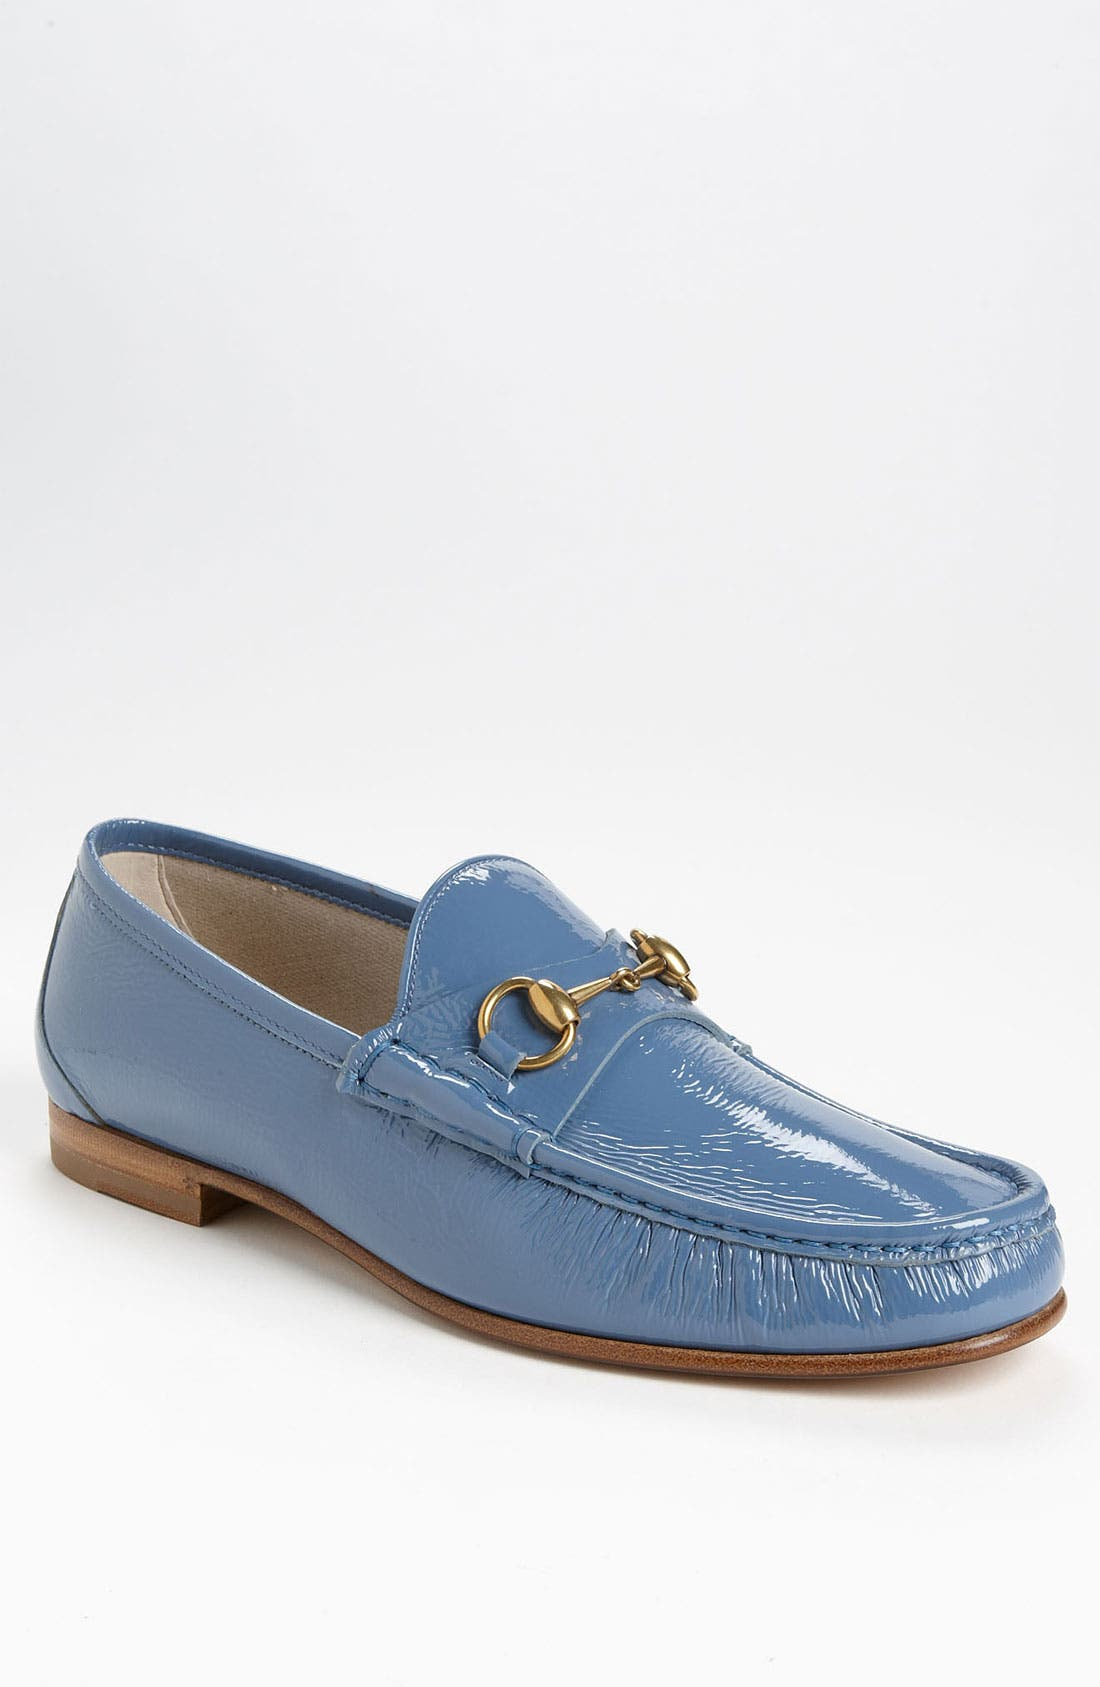 Main Image - Gucci 'Roos' Patent Bit Loafer